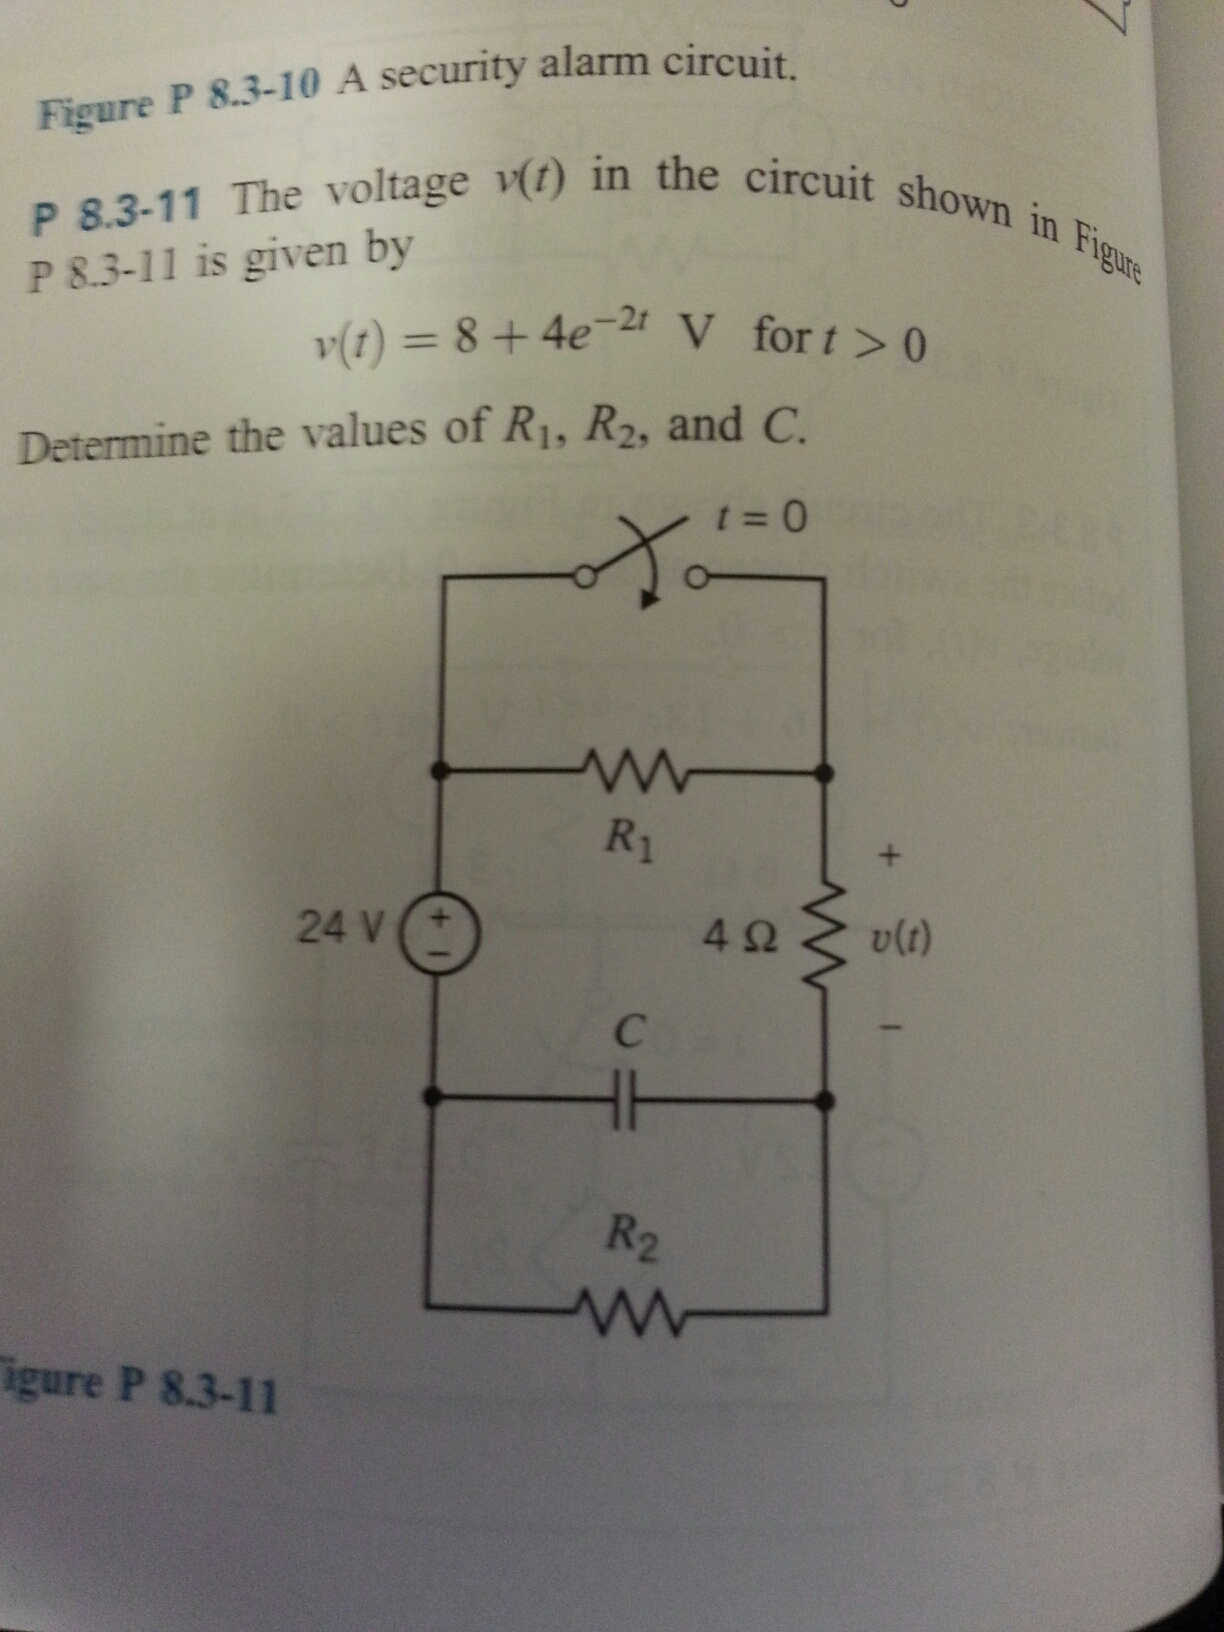 The voltage v(t) in the circuit shown p 8.3-11 is